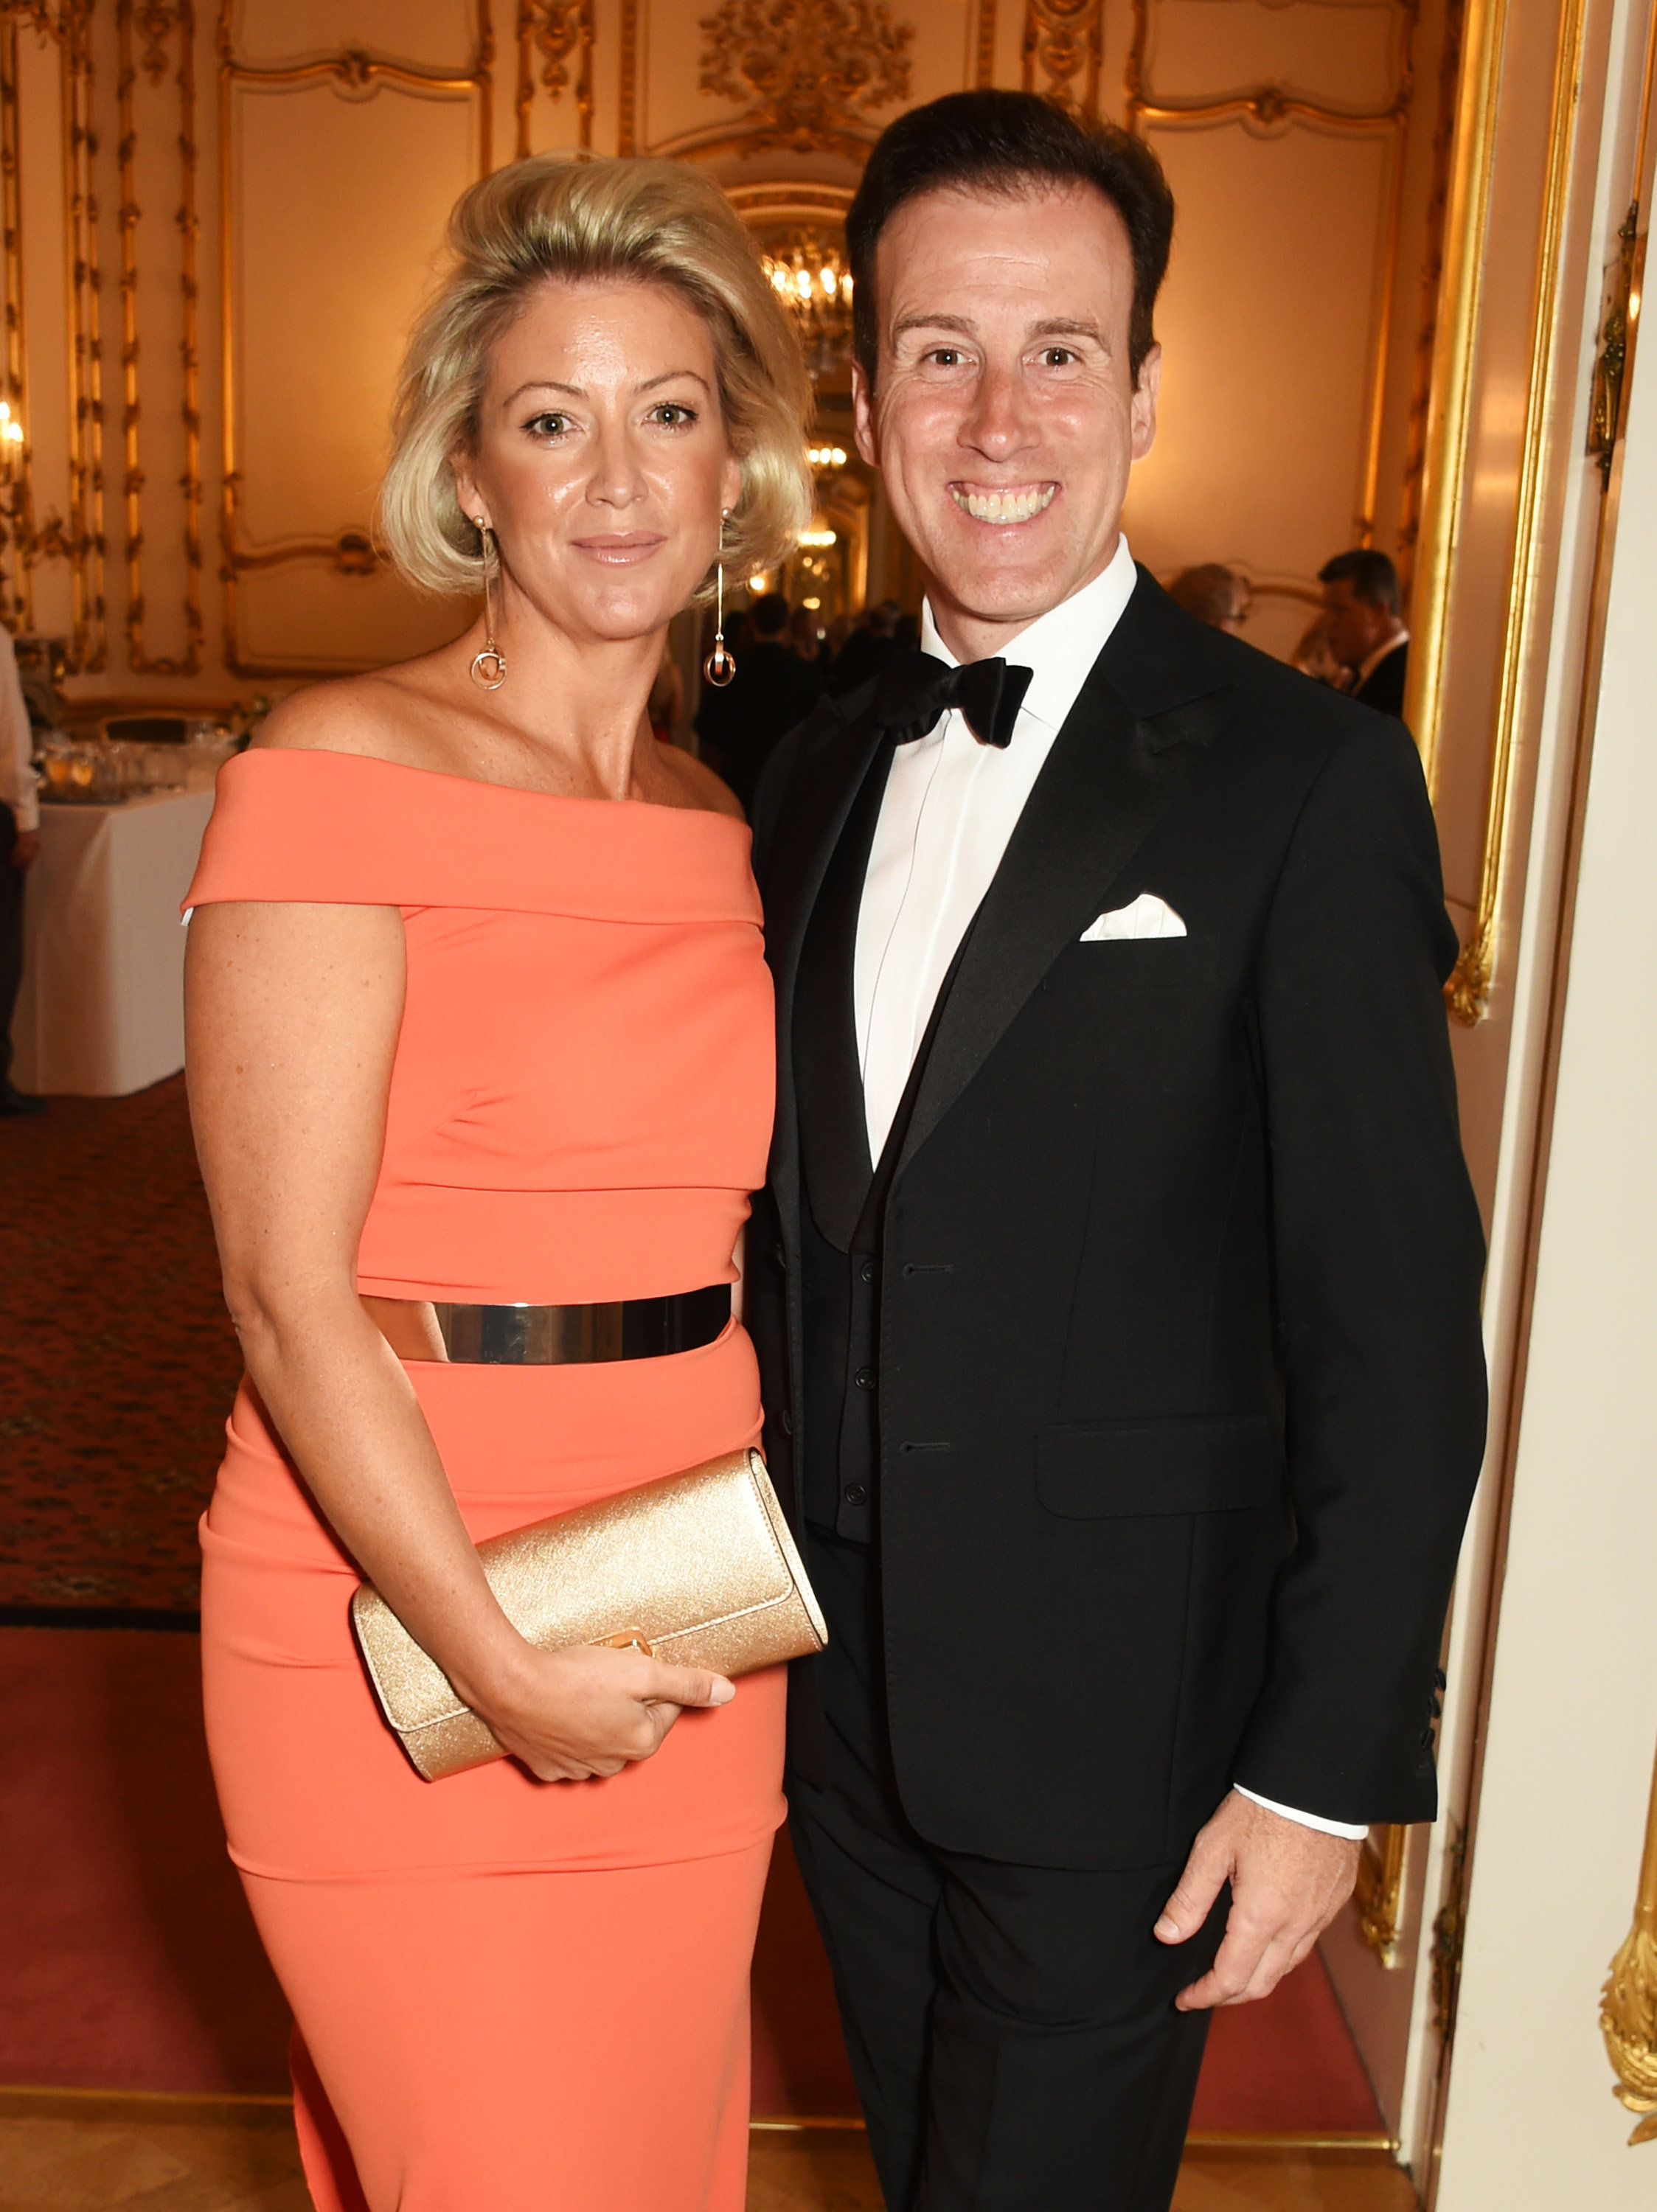 'Strictly Come Dancing' Pro Anton Du Beke 'Over The Moon' As He Discovers He's Going To Be A